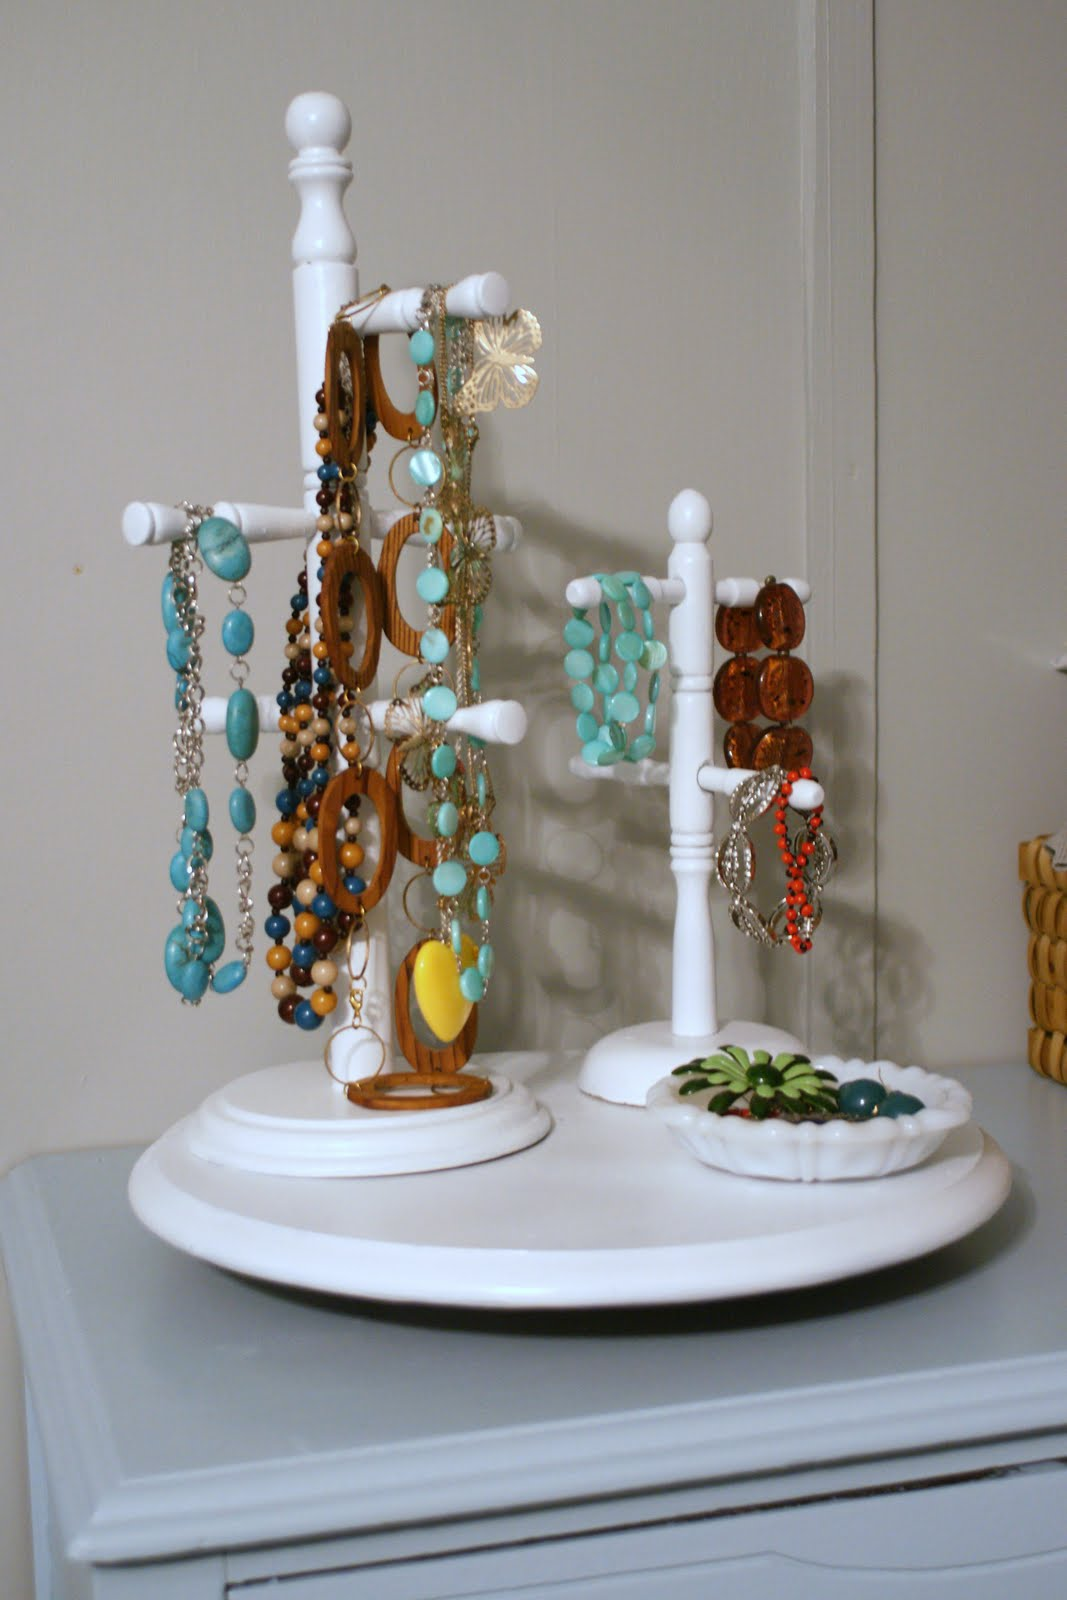 Made By Stephie: Lazy Susan + Mugholder = Jewelry Holder